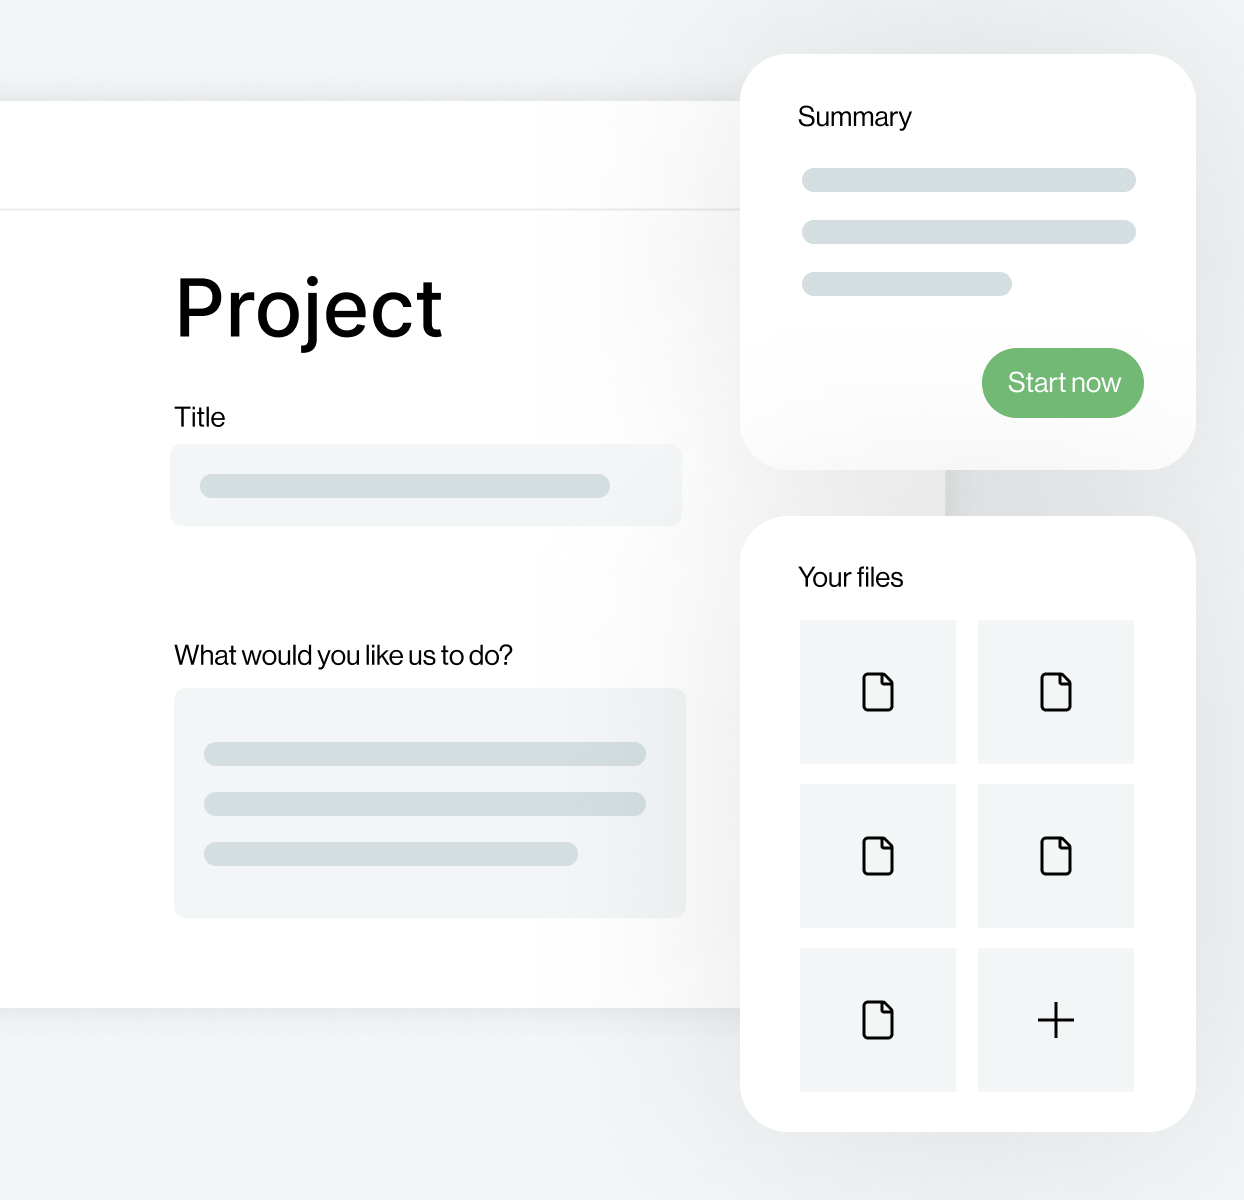 agencyMAX project briefs creation tool